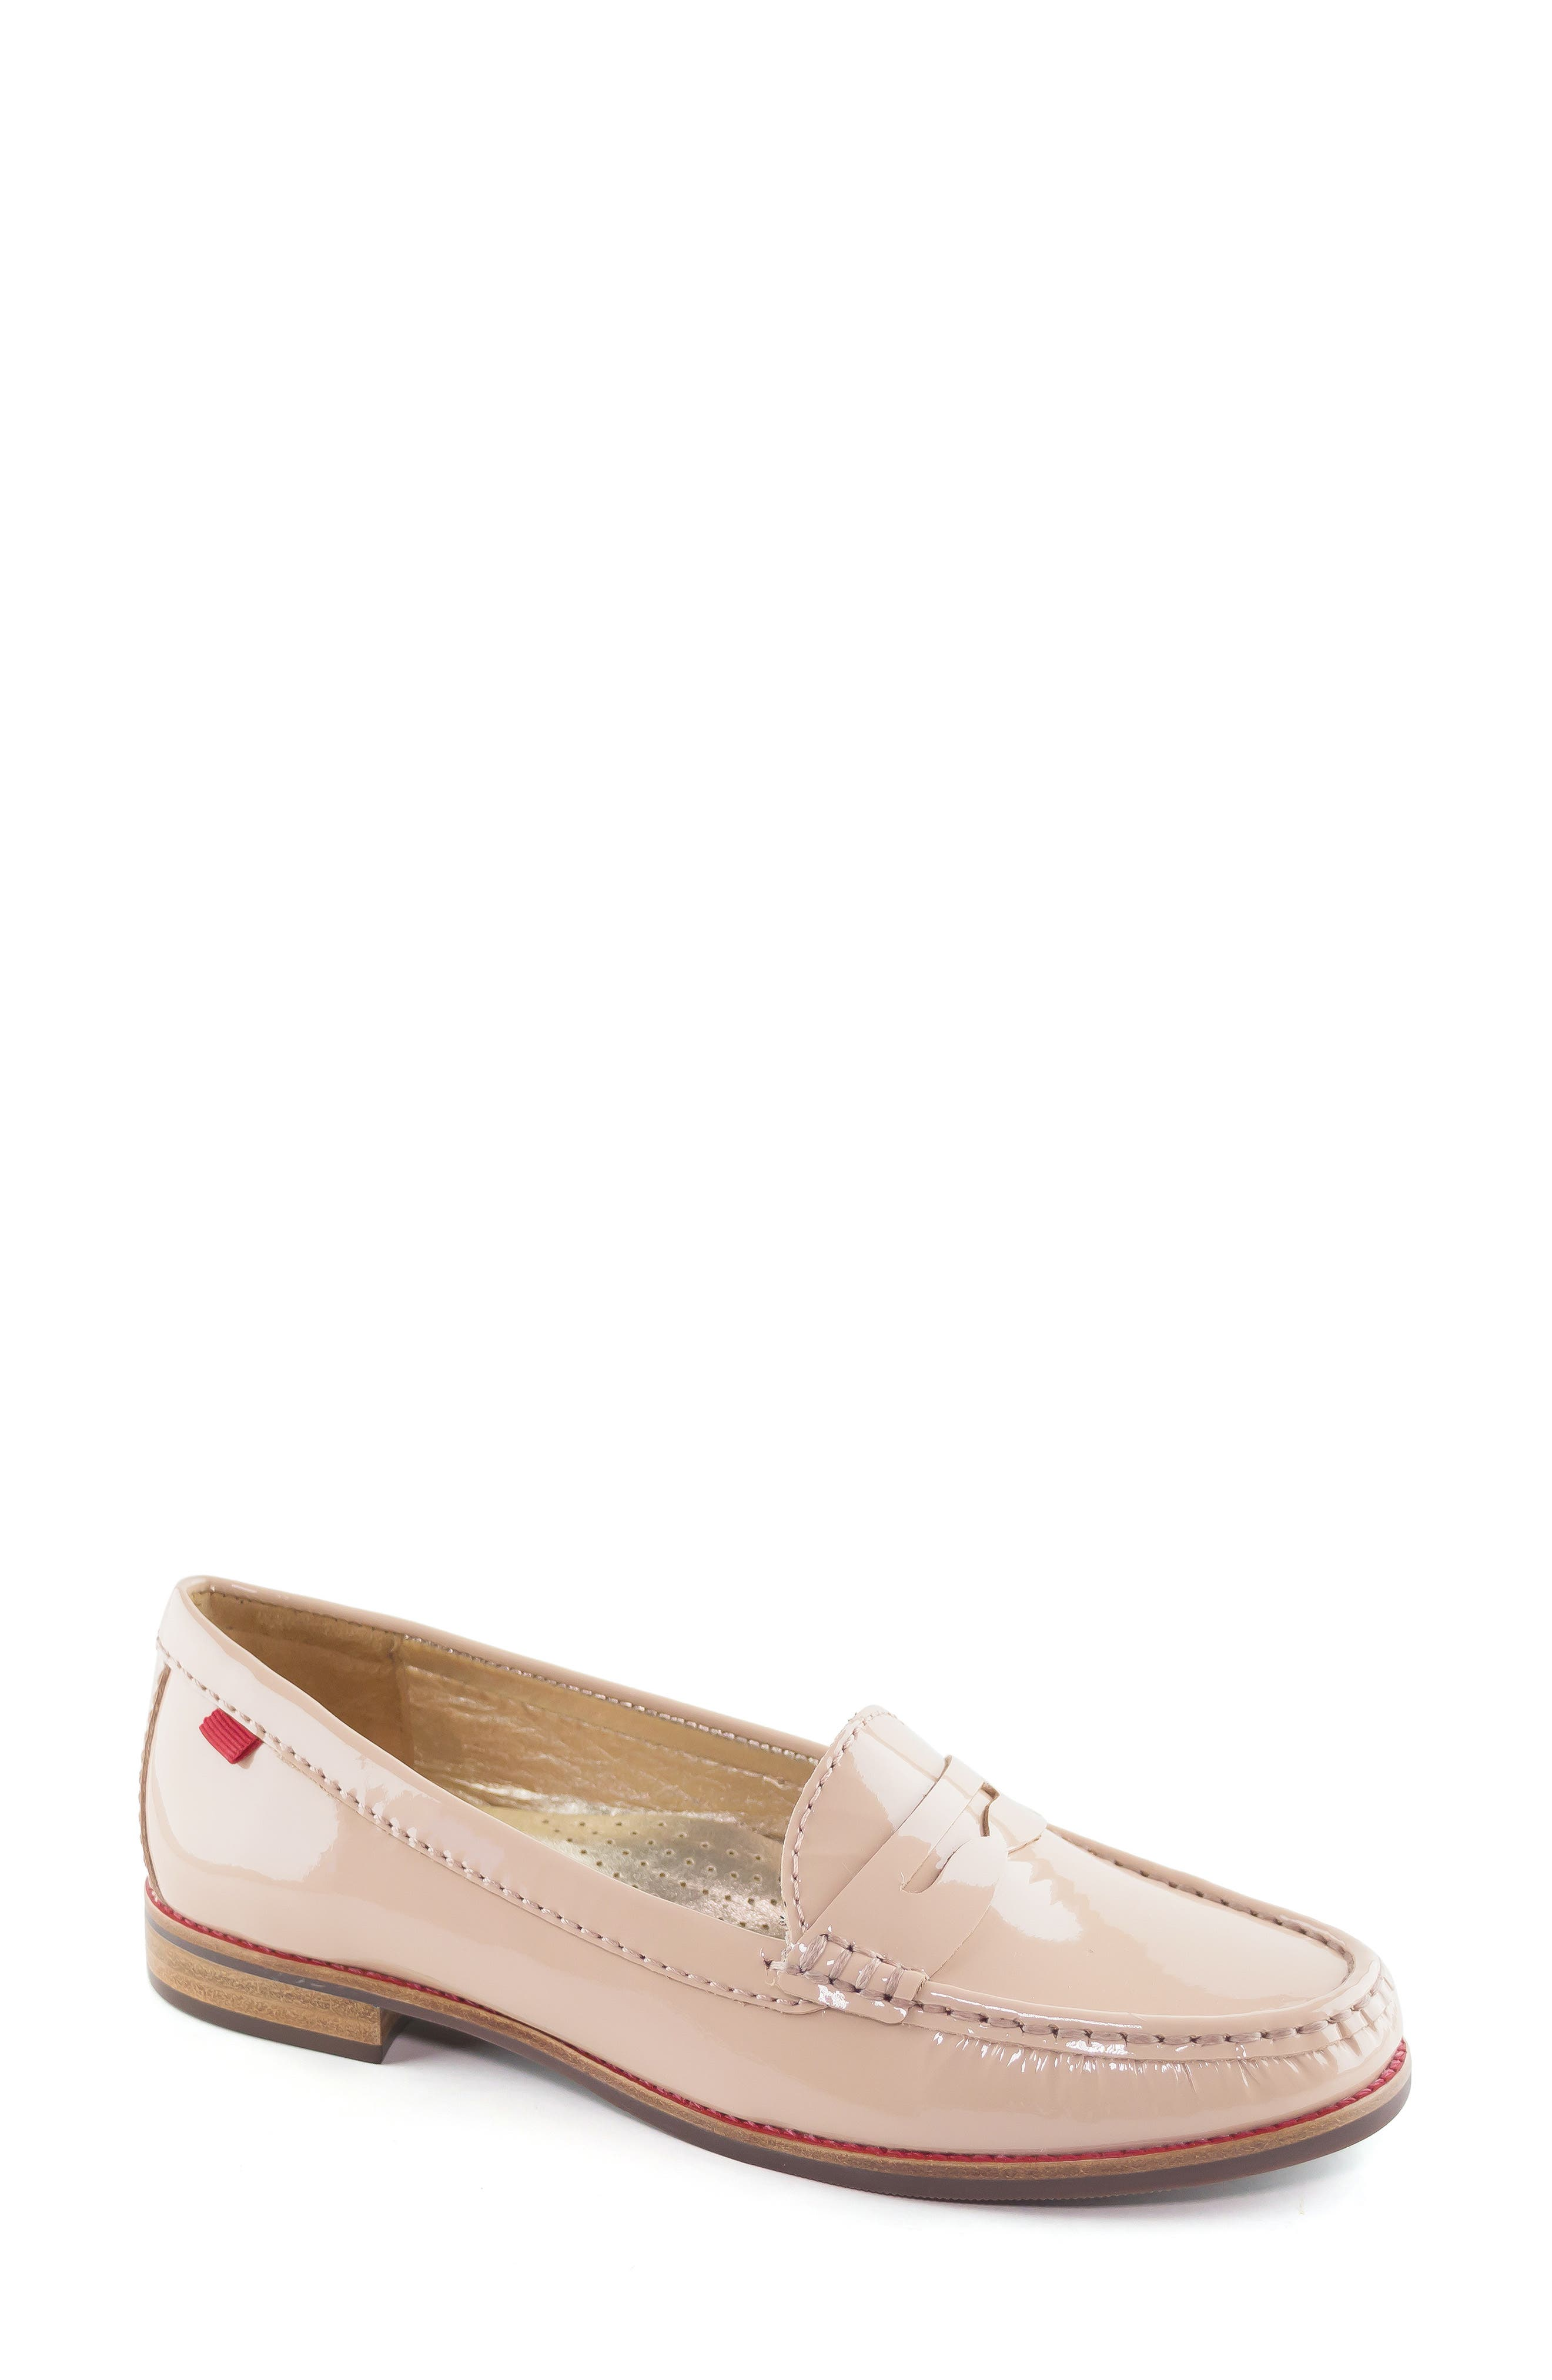 East Village Loafer,                             Main thumbnail 1, color,                             NUDE PATENT